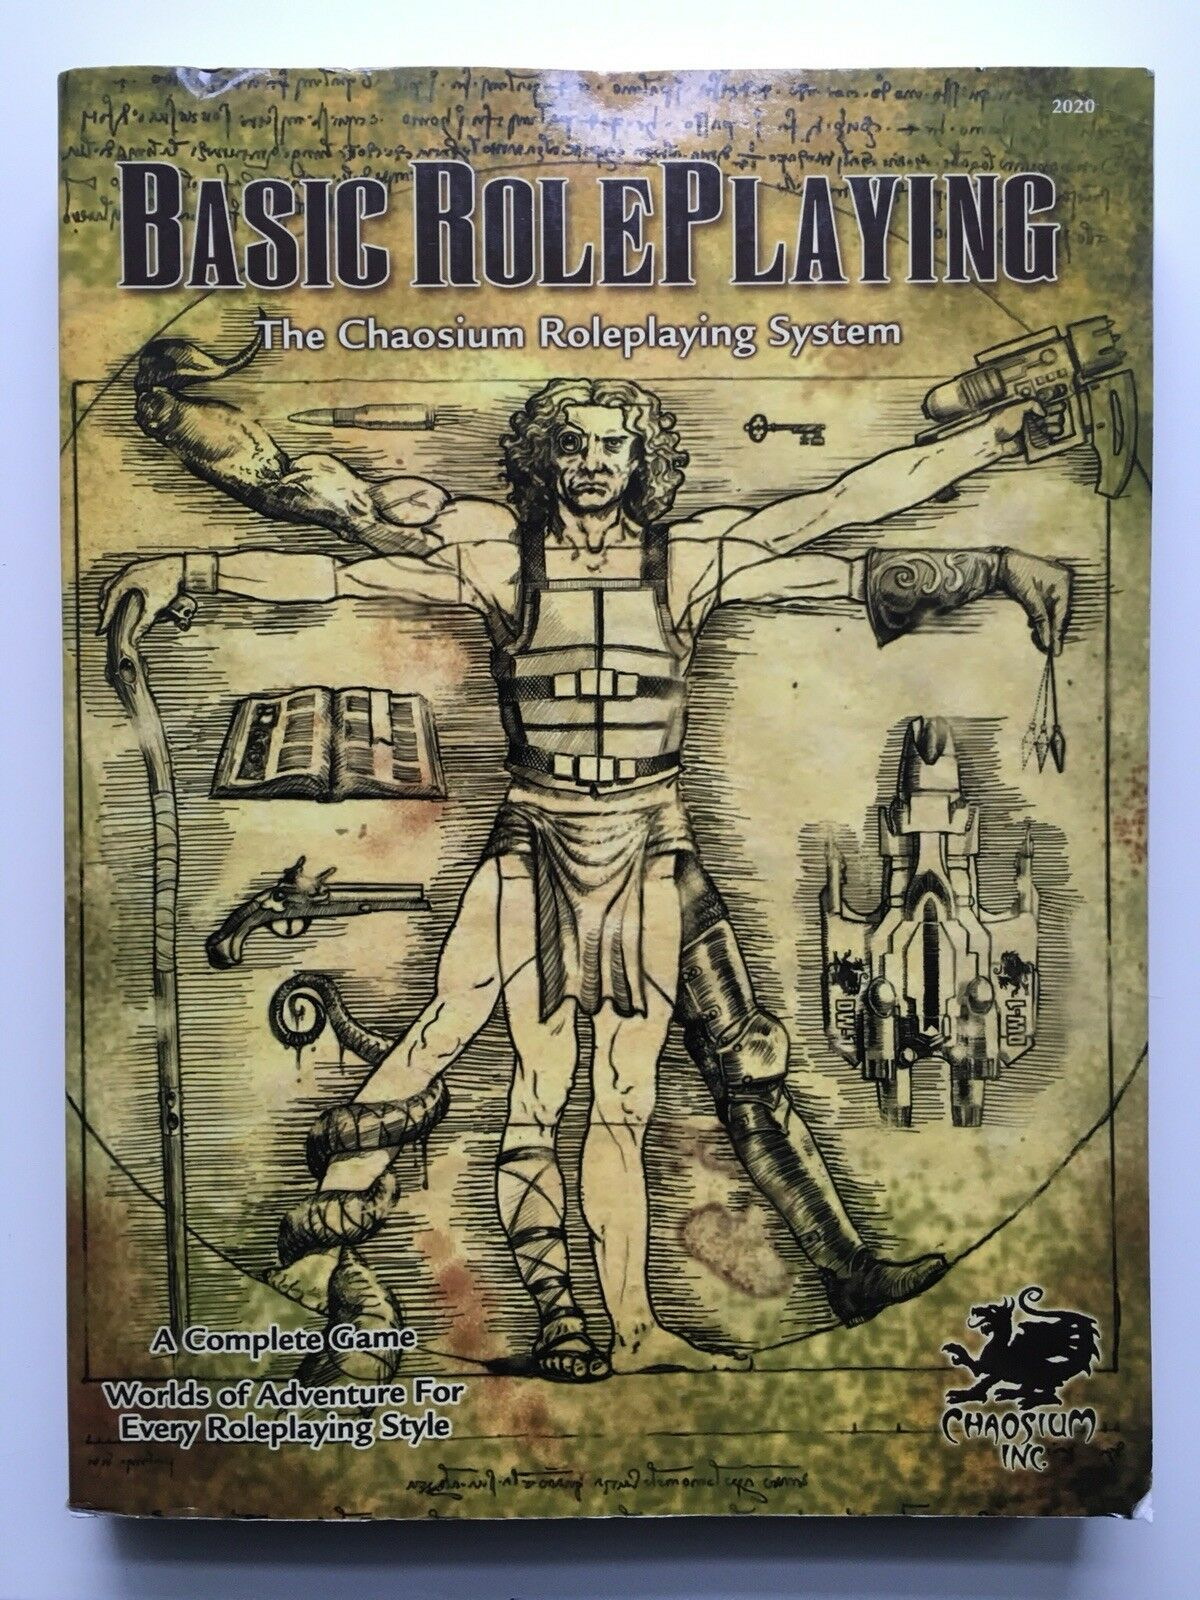 Basic Roleplaying  The Chaosium Roleplaying System - 2020